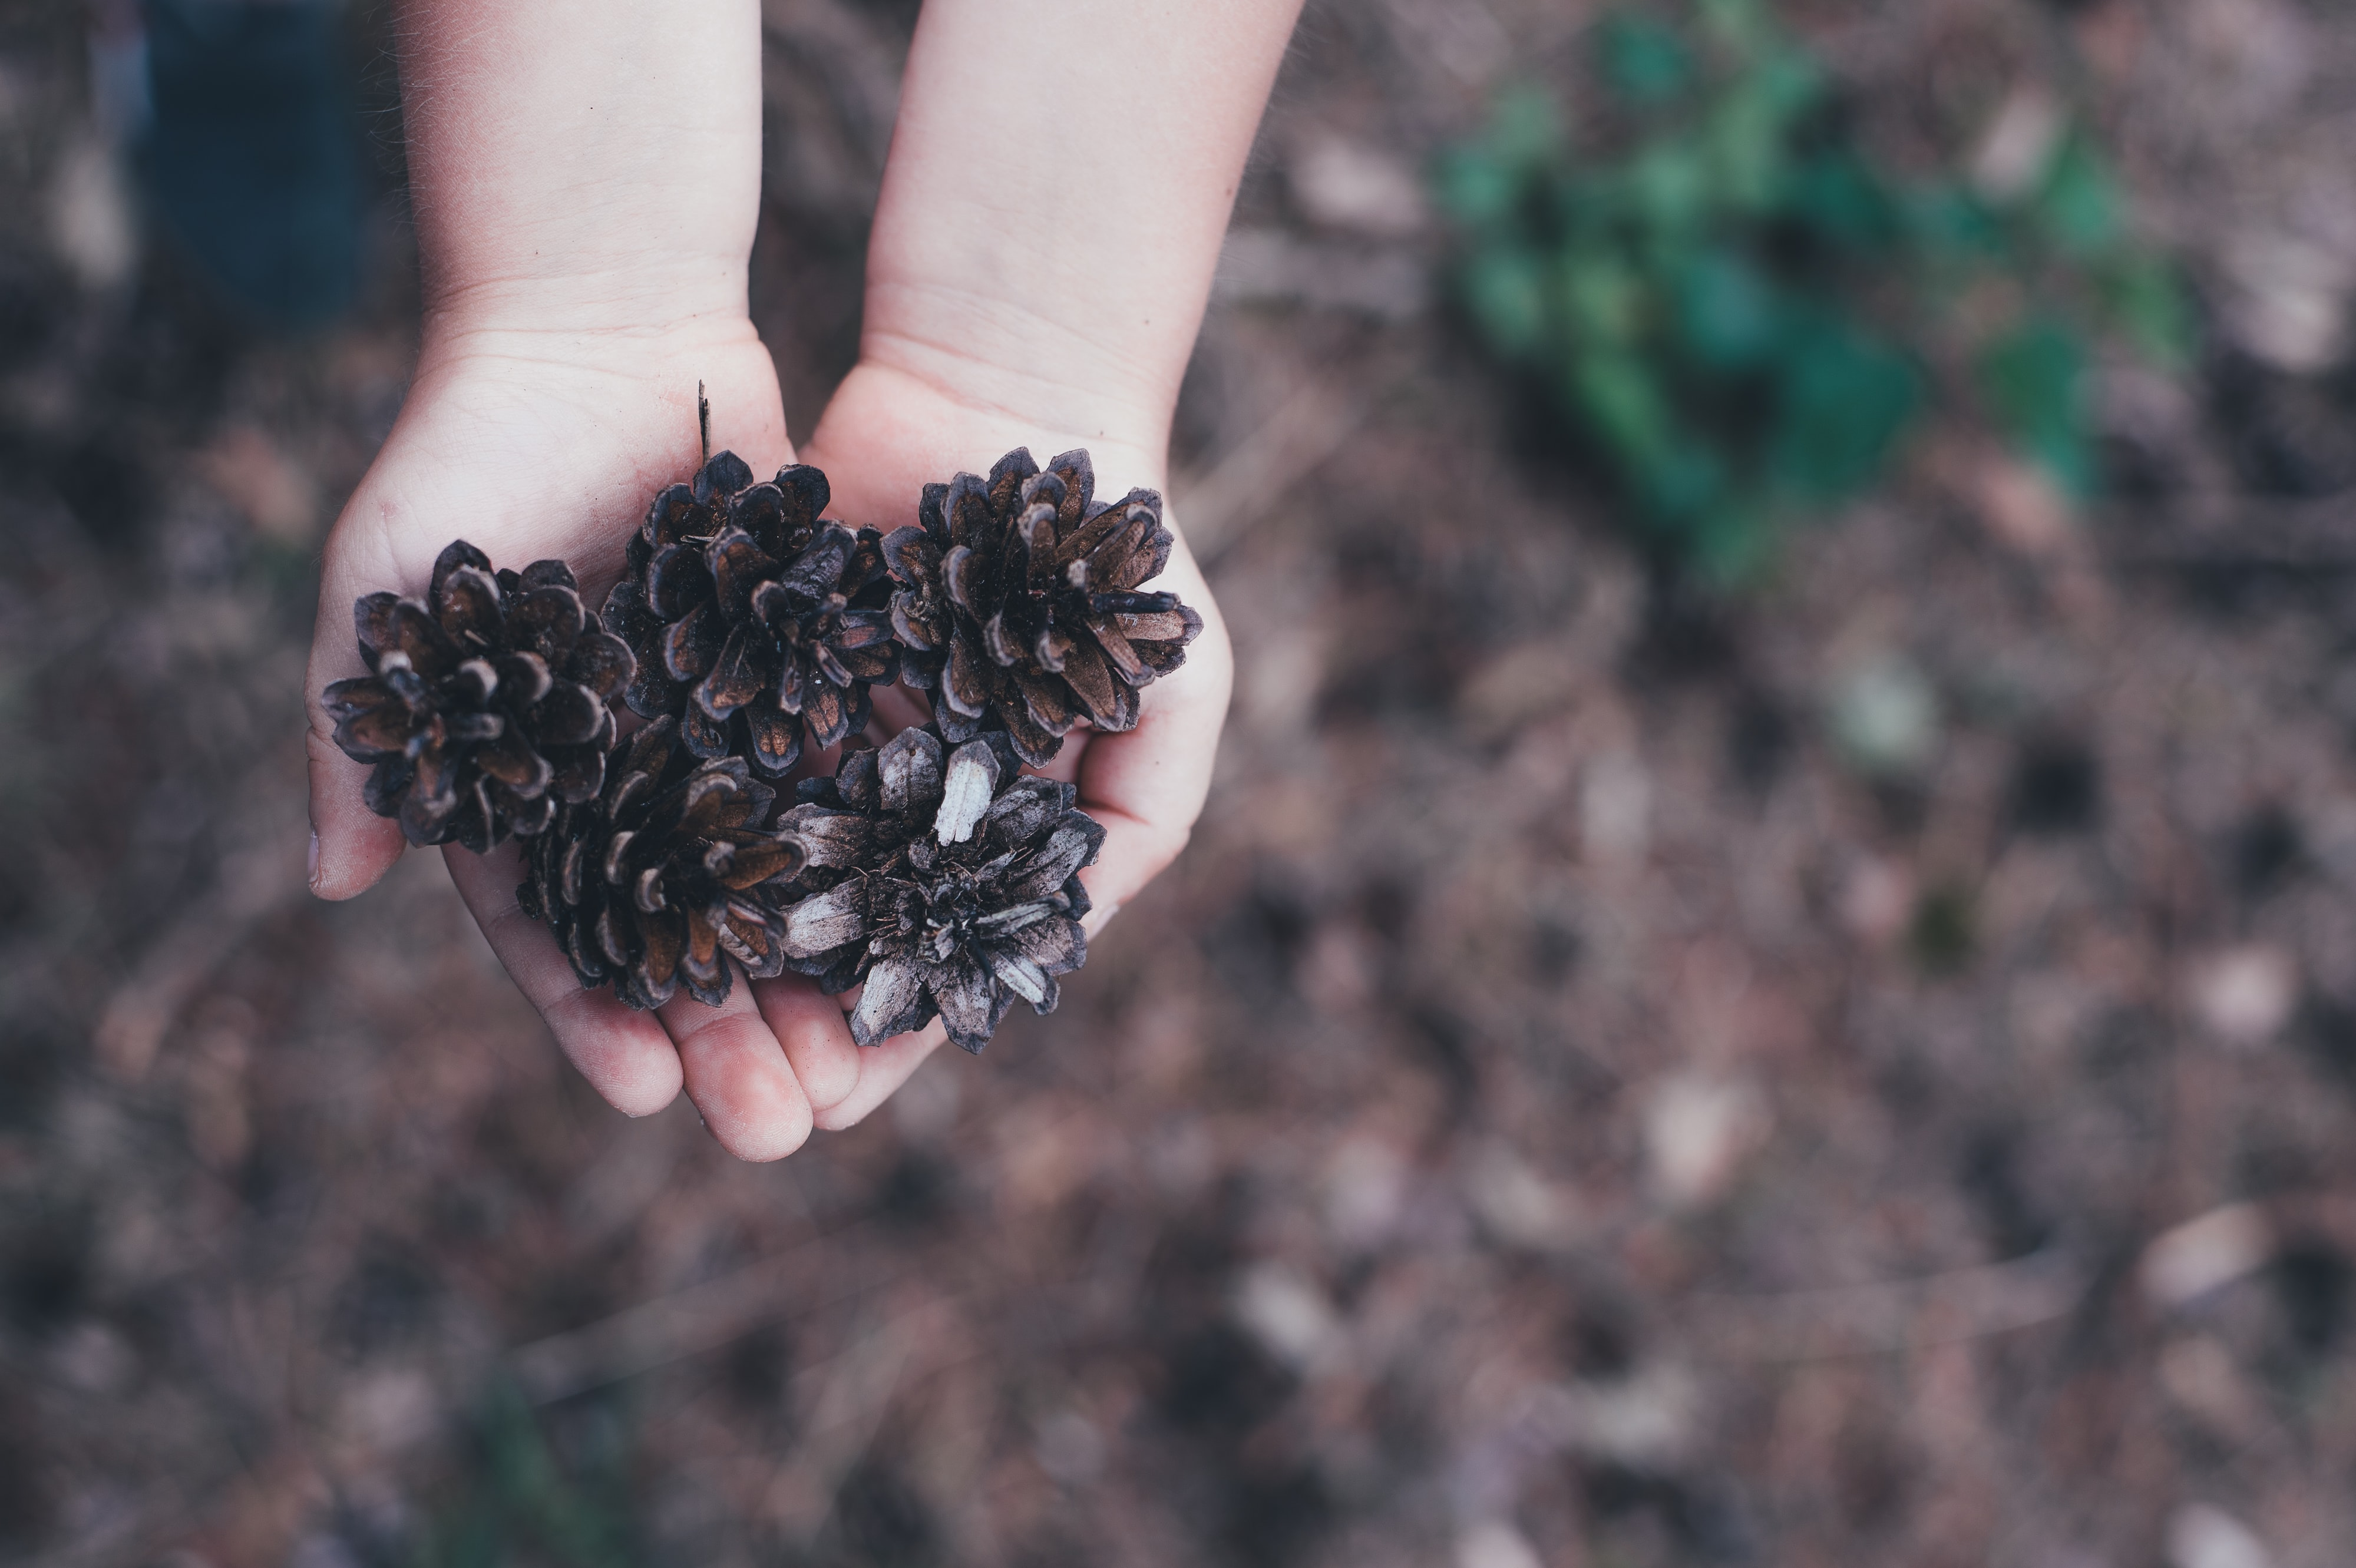 Child's hands holding out several pinecones in a forest setting